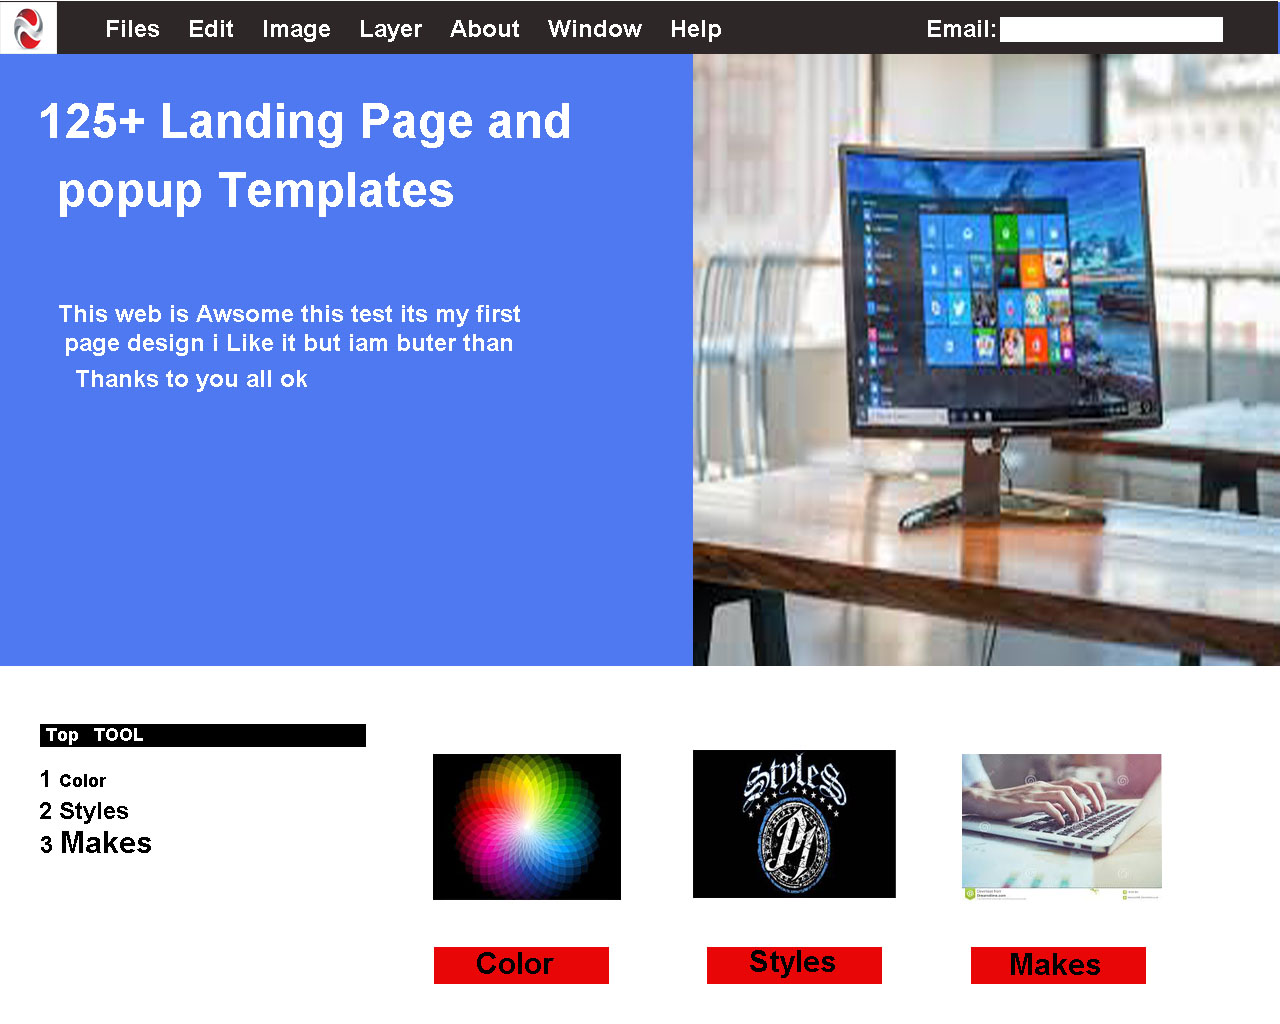 hello iam web designer my all design is awsame but iam make only website fist page